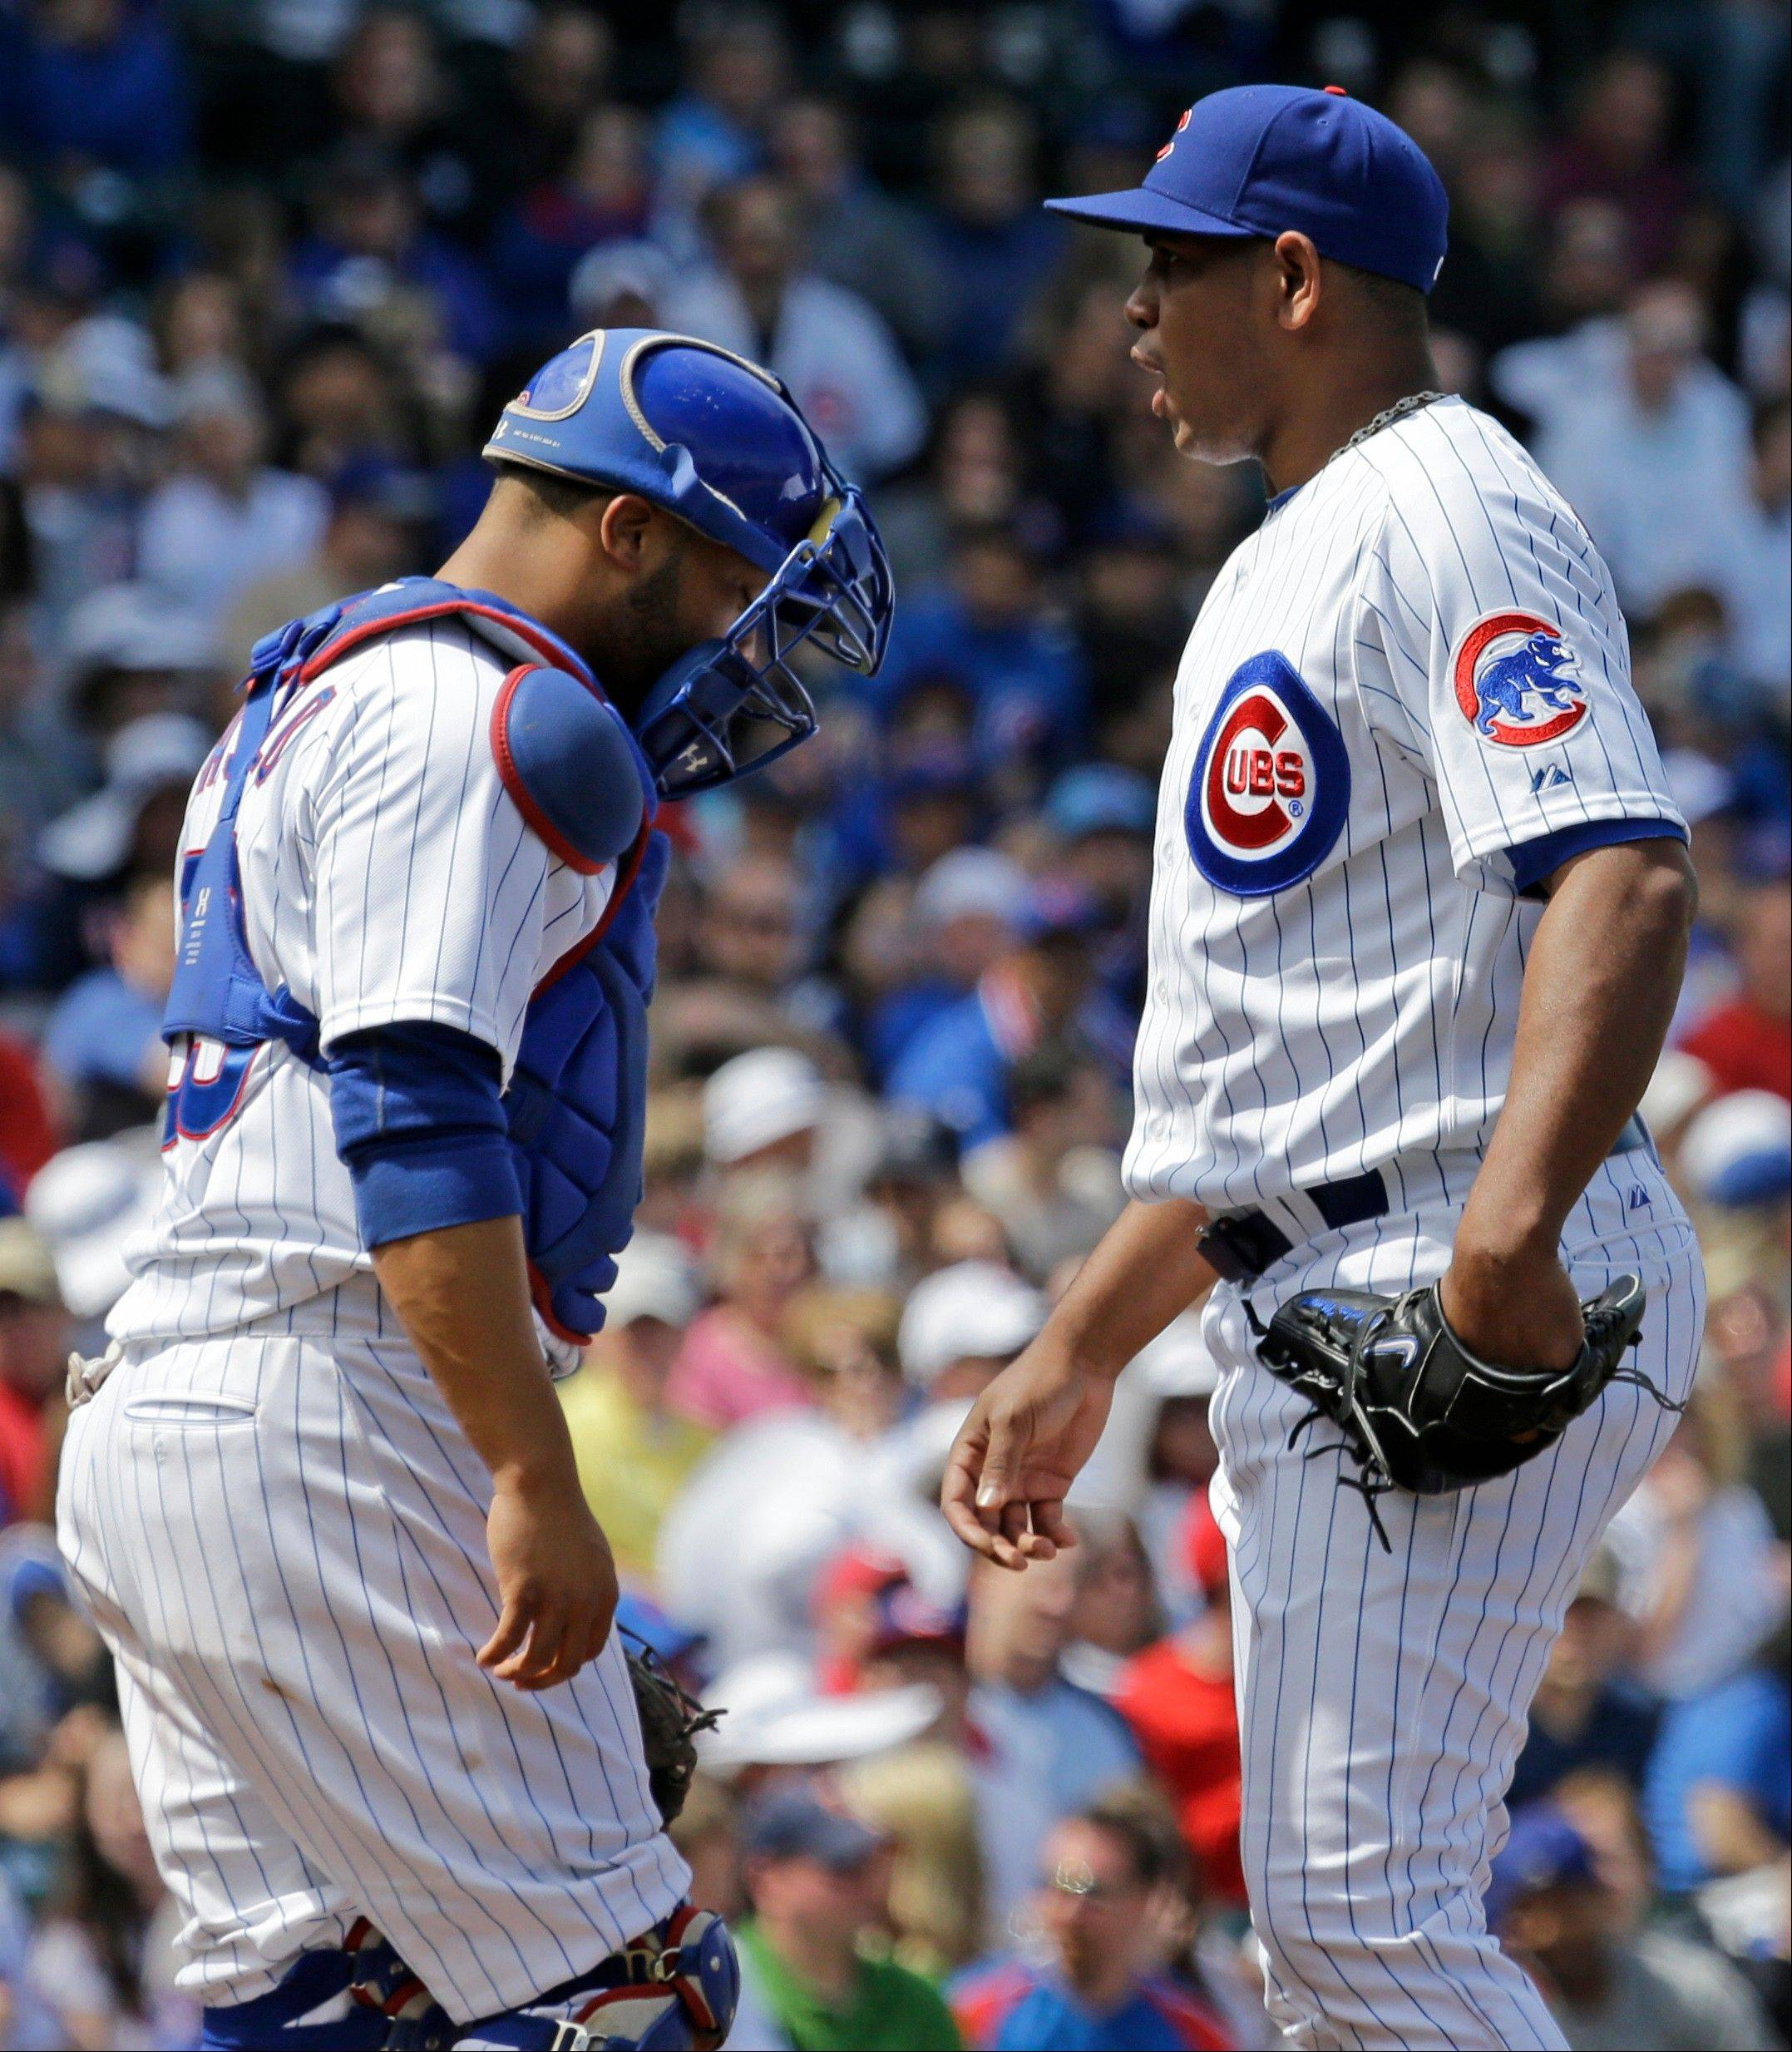 Cubs relief pitcher Carlos Marmol talks with catcher Welington Castillo during a rough appearance Saturday. On Sunday, Marmol worked a 1-2-3 sixth inning against the Reds.